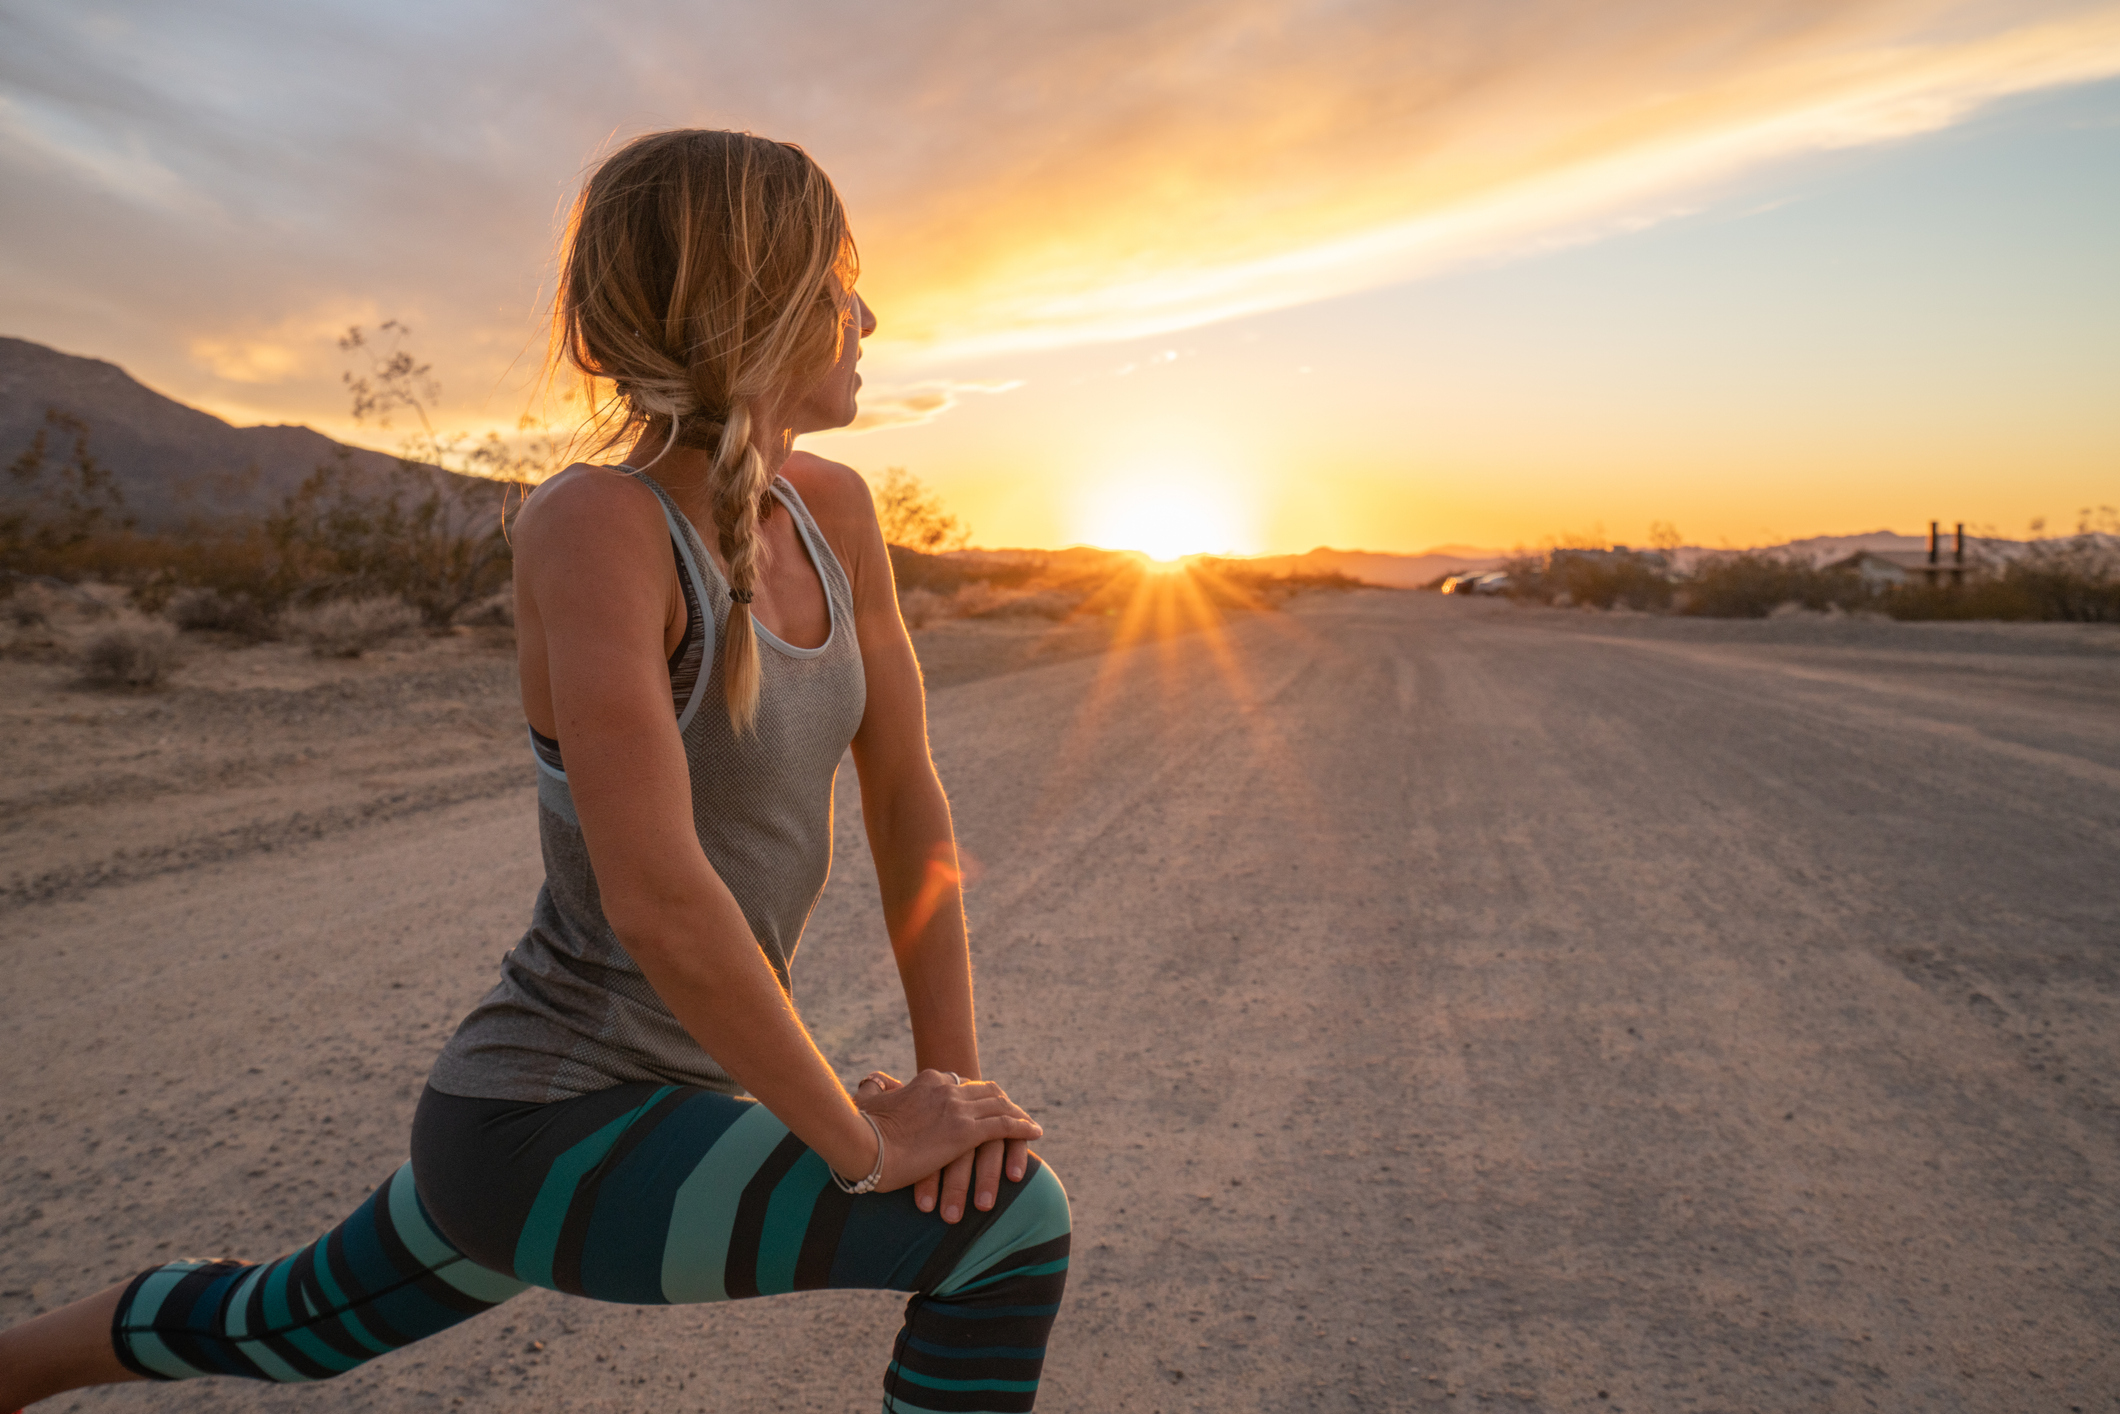 Young woman stretching body after jogging, sunset at the end of the road; female stretches body in nature, outdoor workout